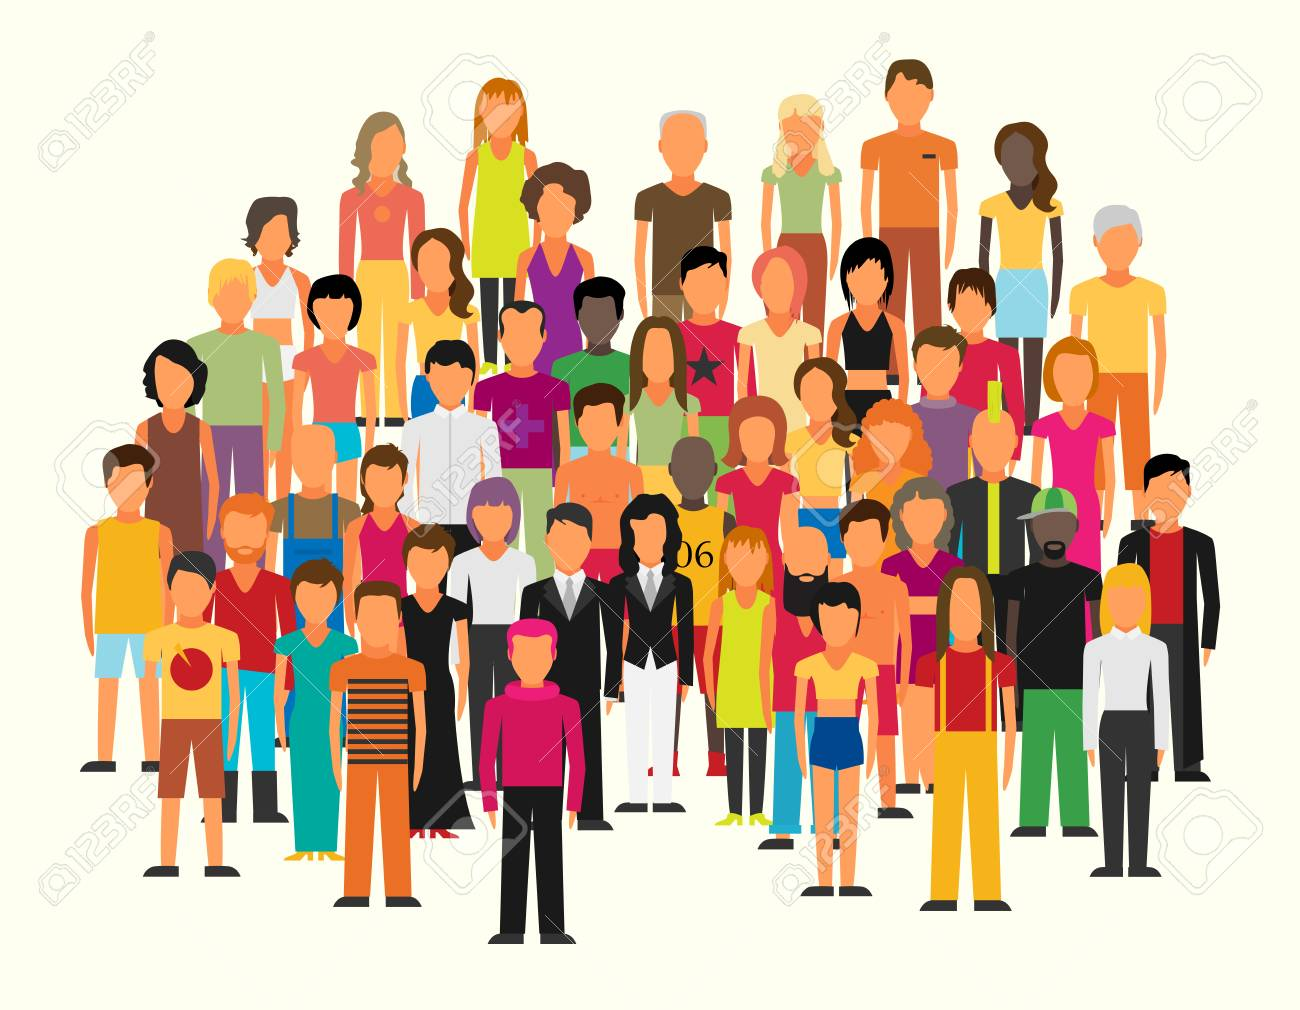 Flat illustration of society members with a large group of men and women - 94585648